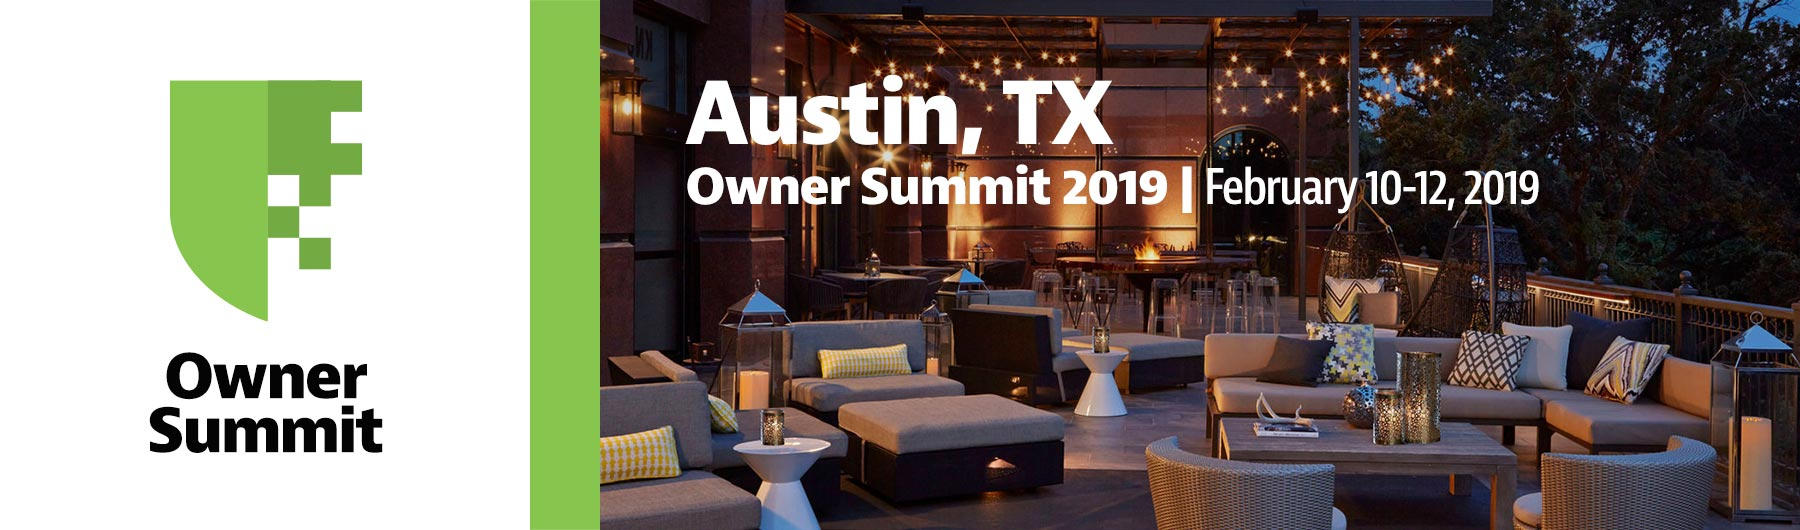 Owner Summit 2019 | Austin